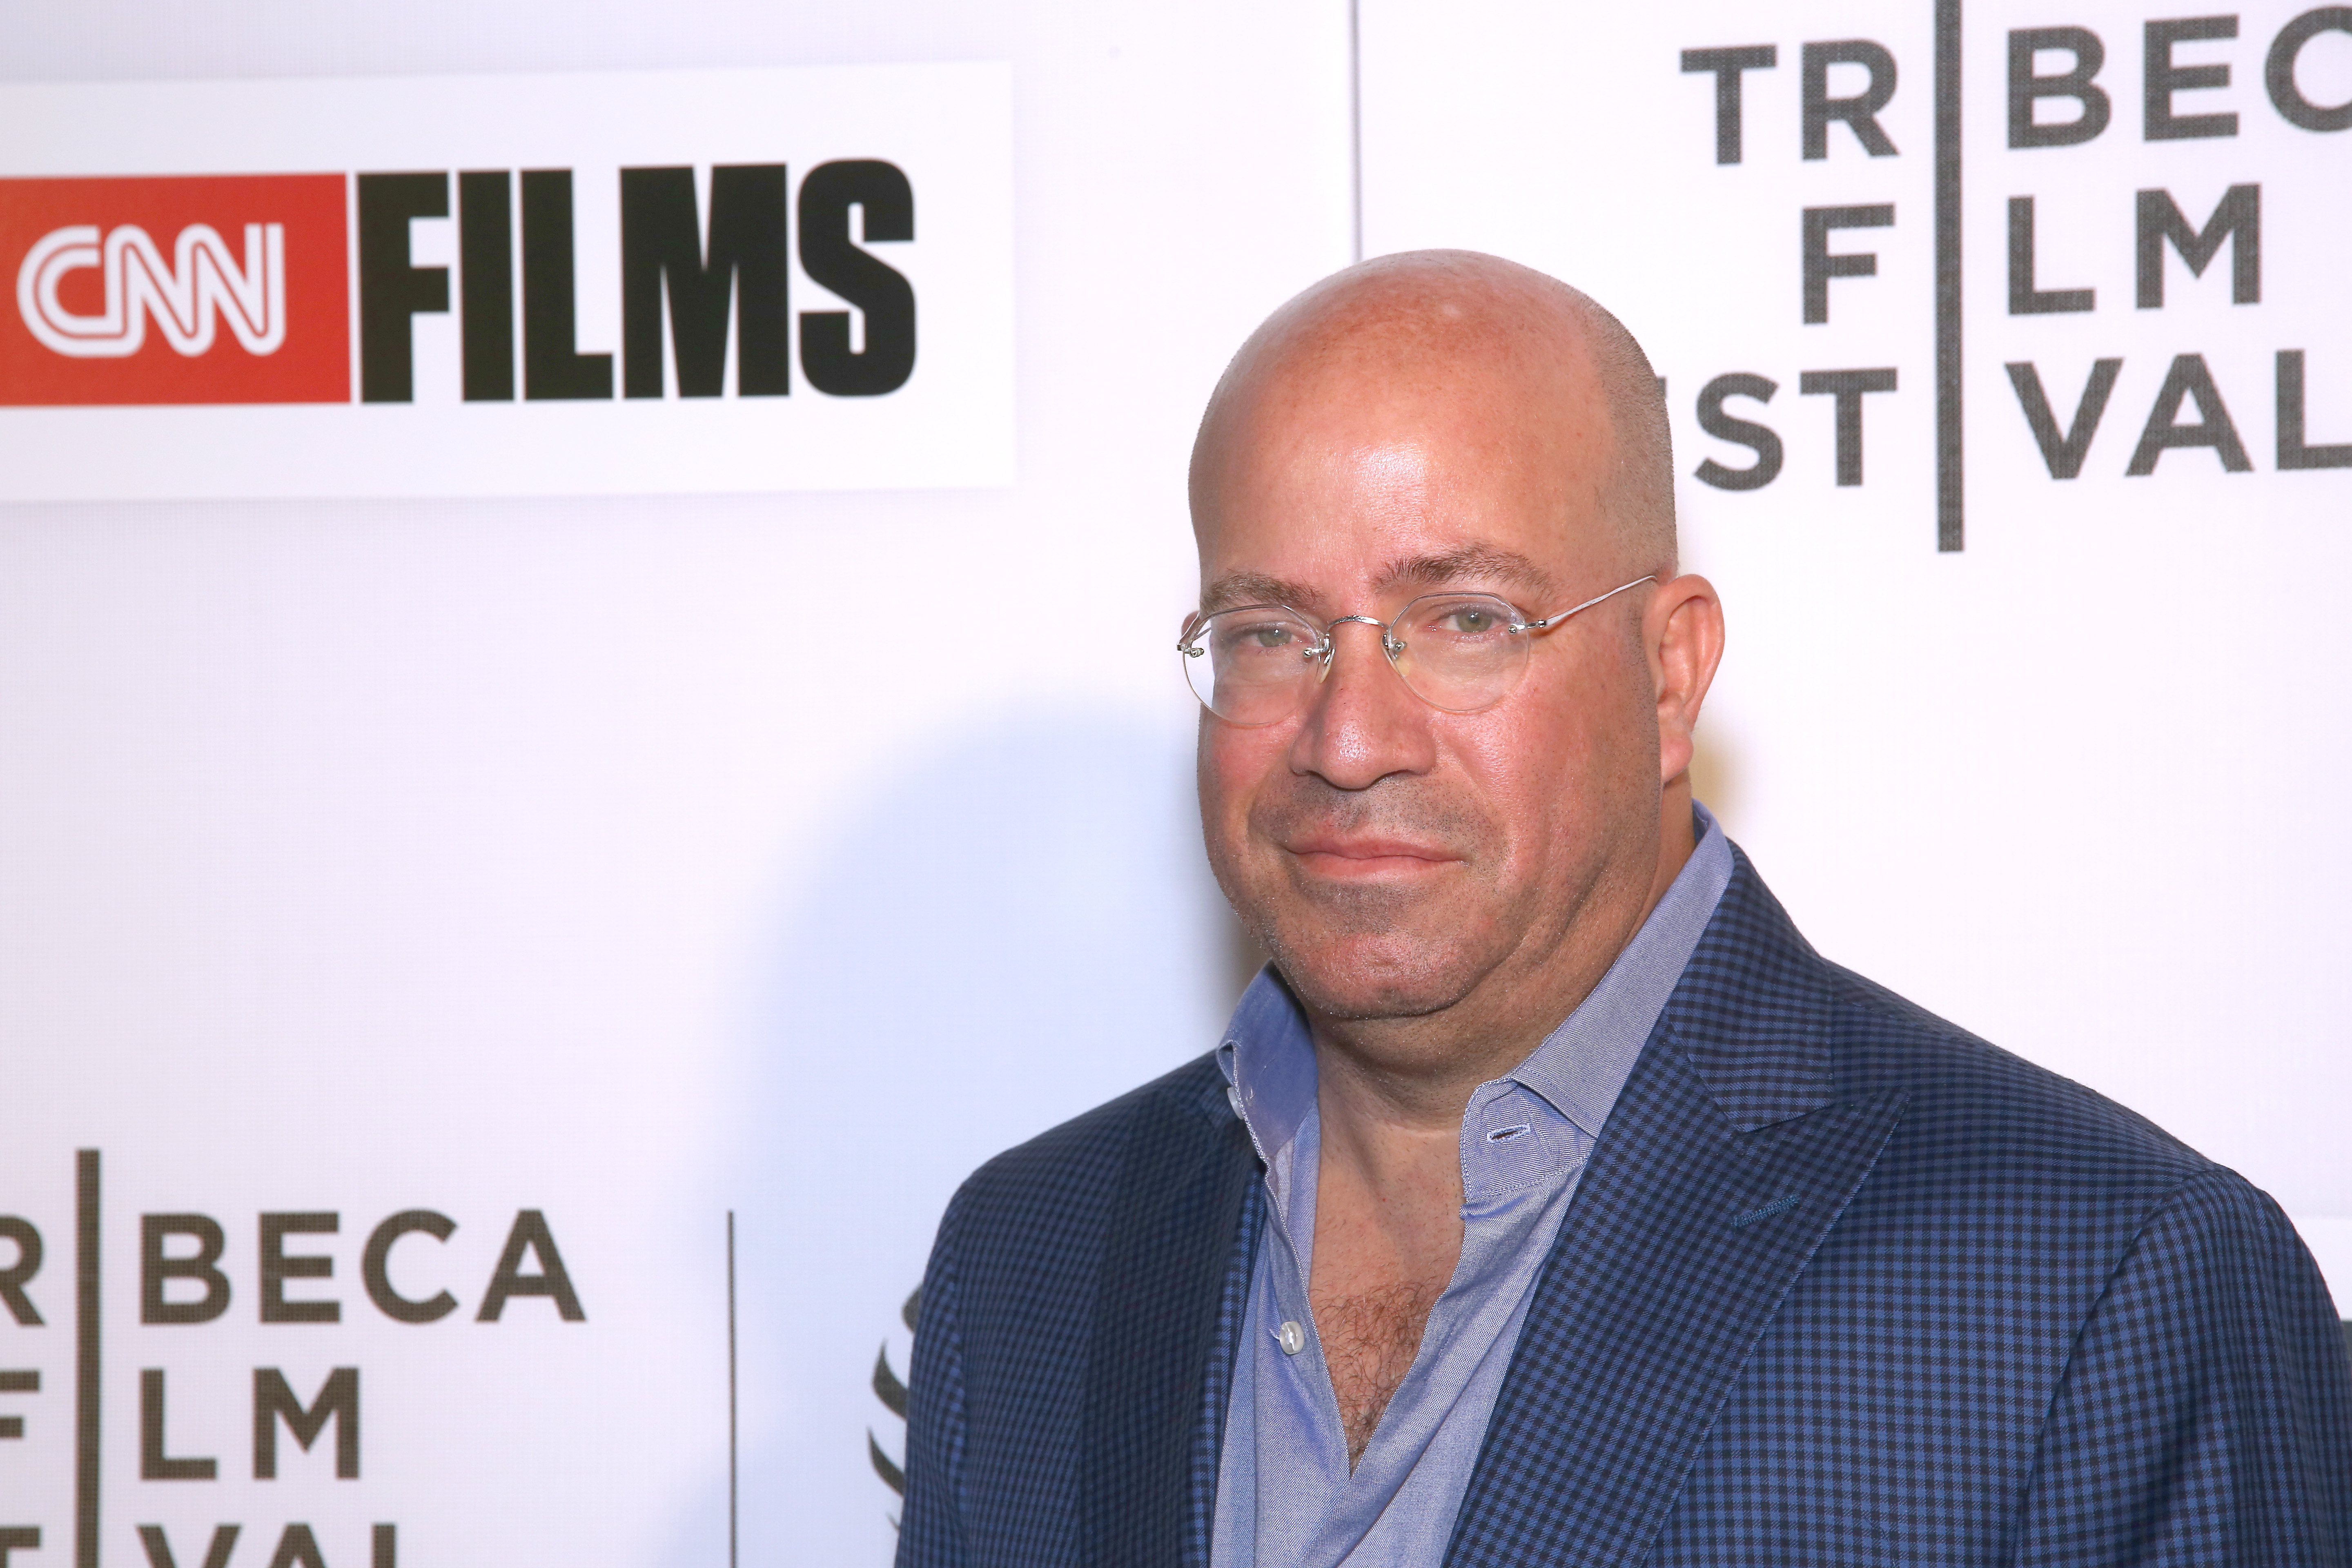 NEW YORK, NY - APRIL 16: President of CNN Worldwide Jeff Zucker at CNN Films - Jeremiah Tower: The Last Magnificent at TFF Panel & Party on April 16, 2016 in New York City. 26123_001_0086.JPG (Photo by Paul Zimmerman/Getty Images for Turner)